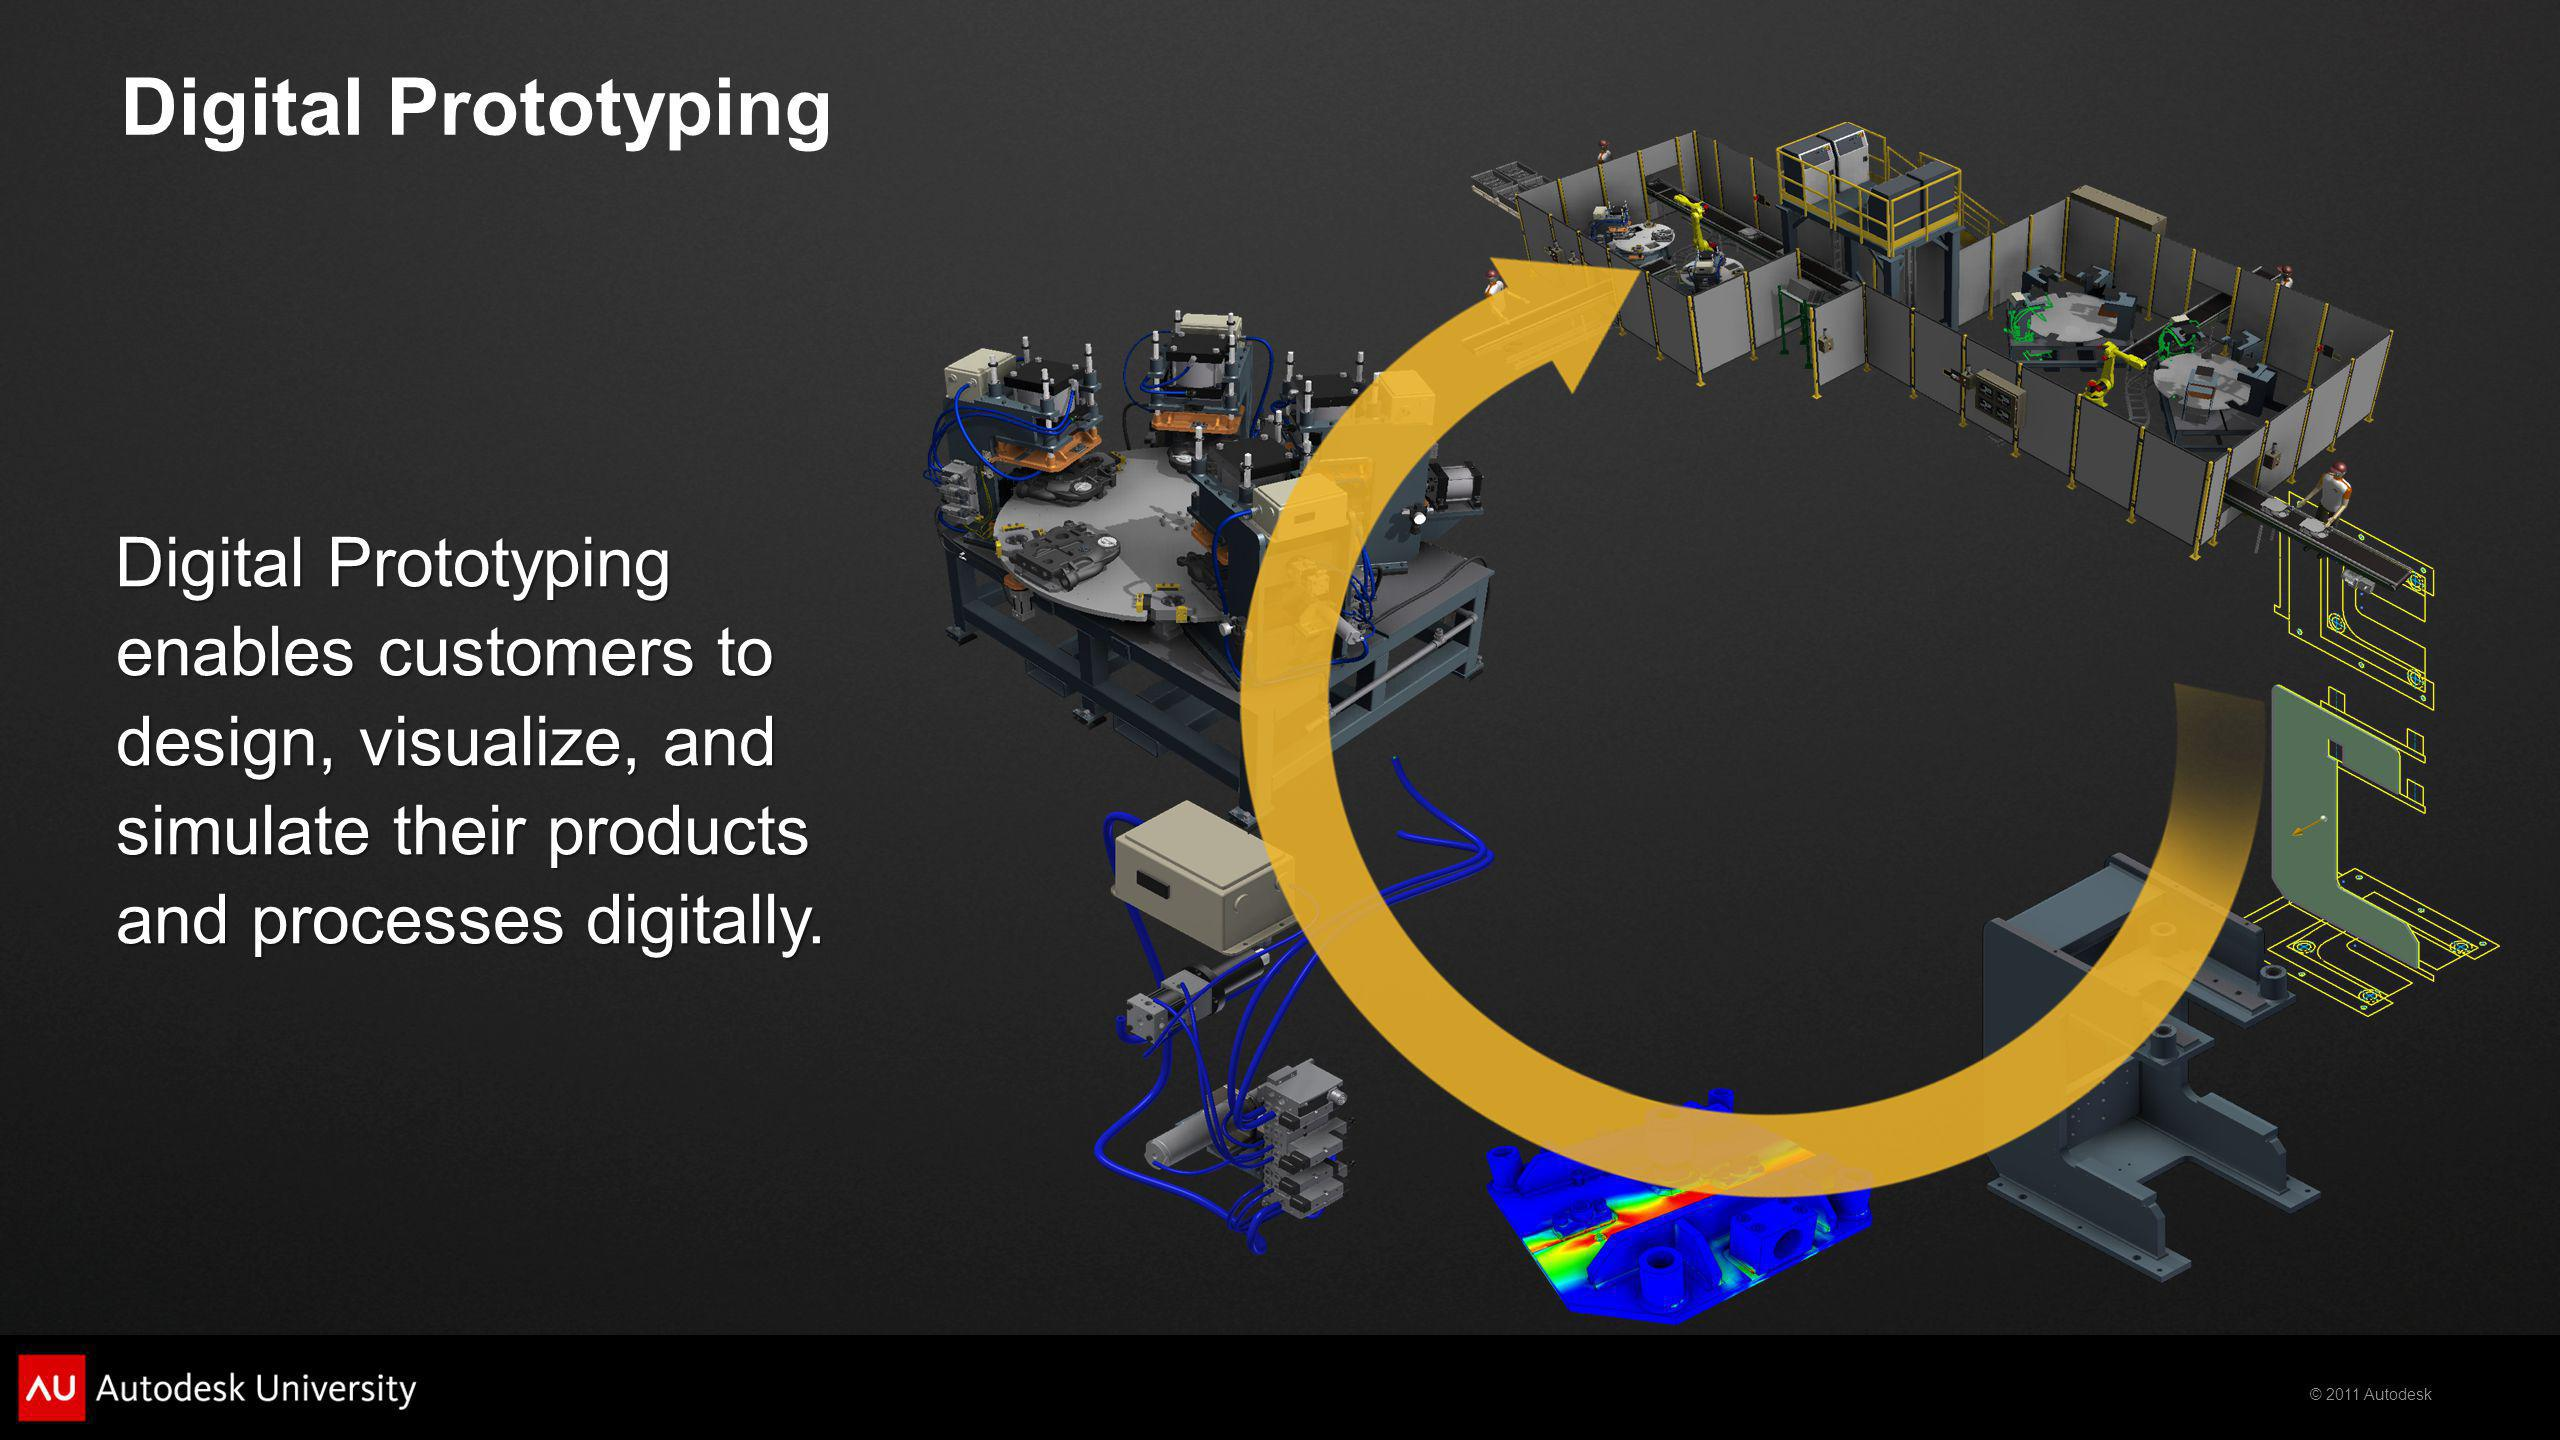 Digital Prototyping Digital Prototyping enables customers to design, visualize, and simulate their products and processes digitally.